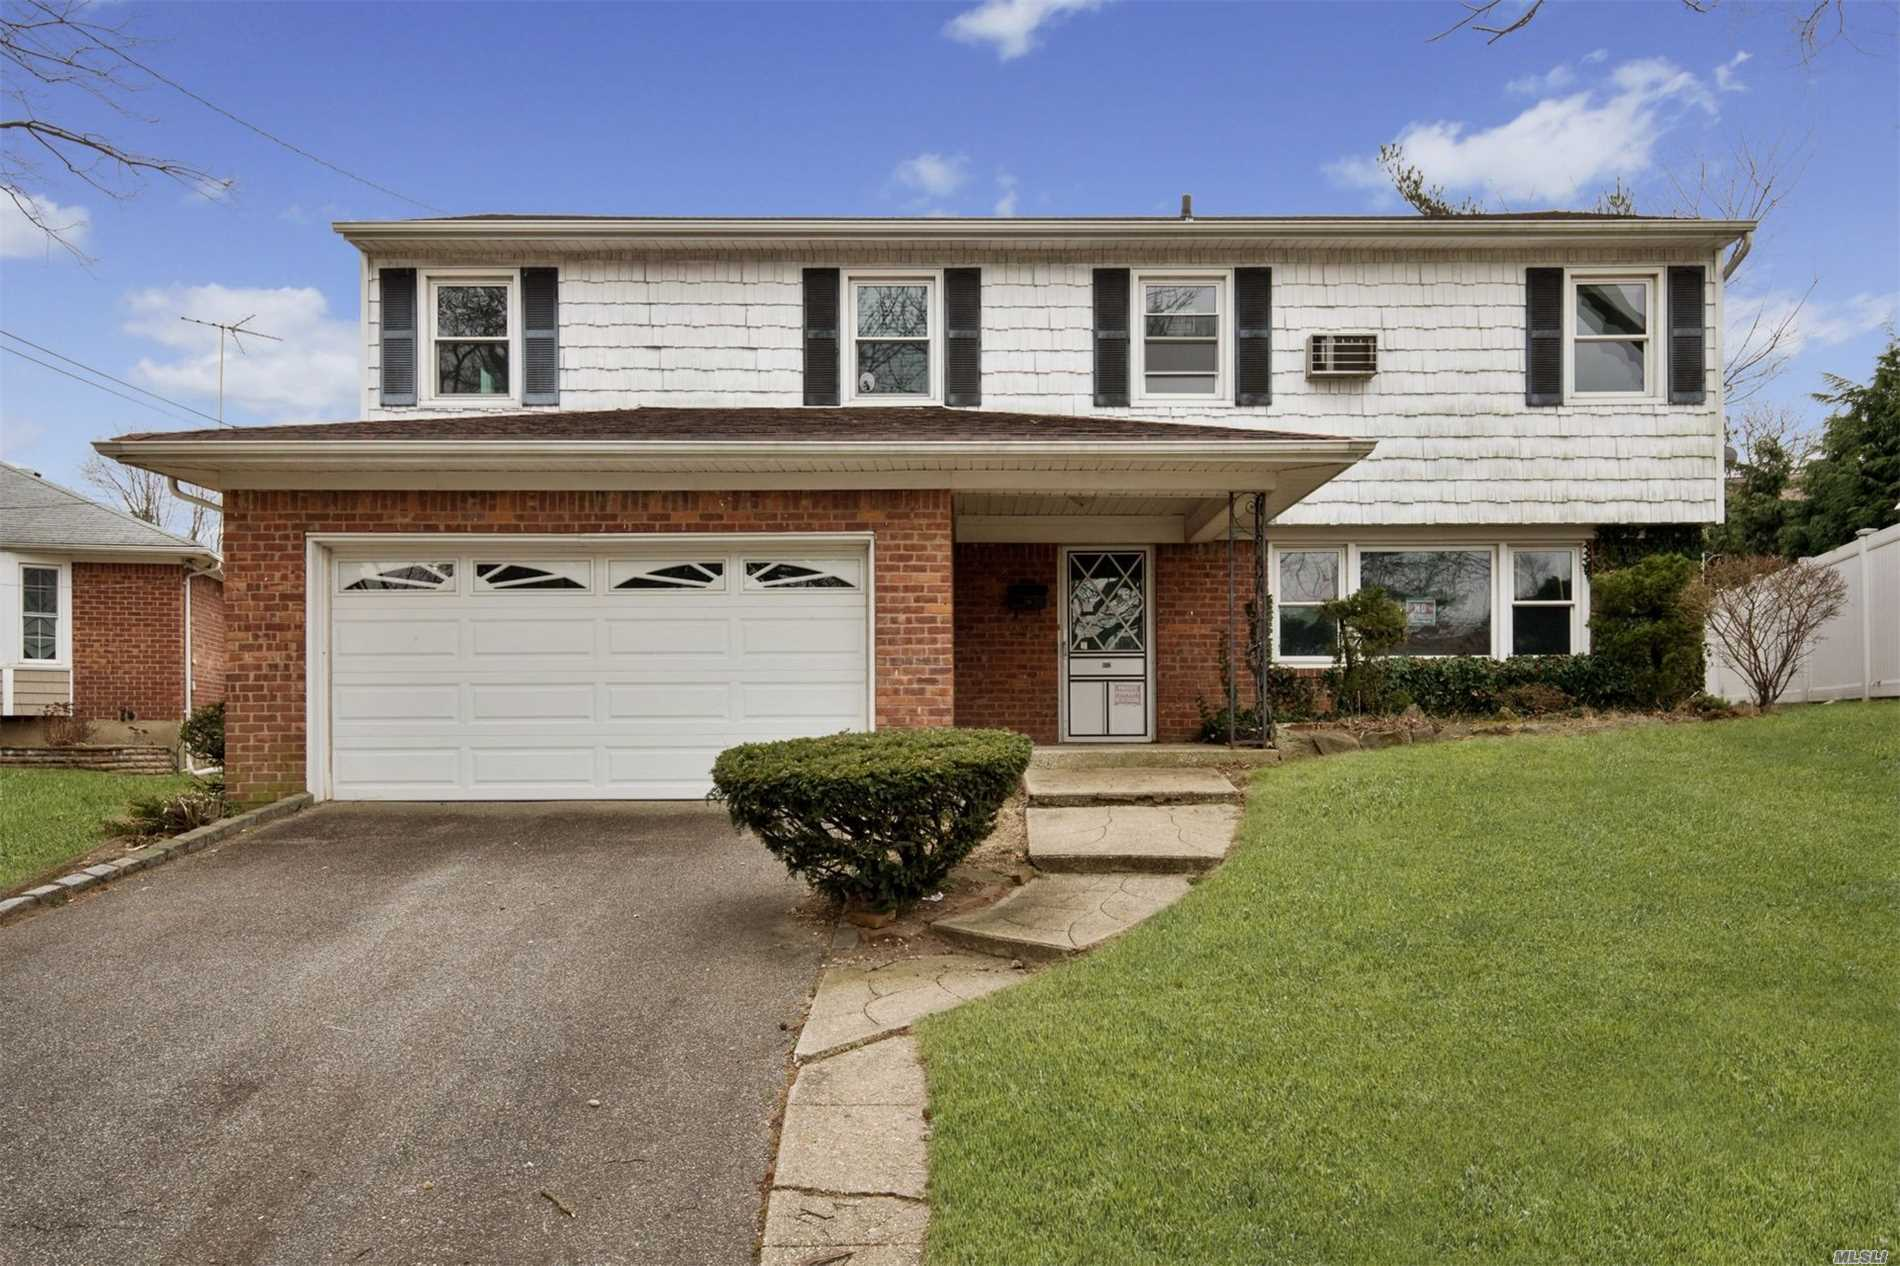 Over-Sized Split Level Home W/ A Fantastic Layout! Spacious Living Room W/Vaulted Ceilings Making It Feel Larger & Open Then It Is Along W/ A Brick Cozy Wood Burning Fpl & Sliders Leading To The Yard! Great Sized Eik W/ Potential To Create The Open Concept You've Always Wanted. 4 Generous Sized Bedrms & 2.5 Bathrms. This Home Has It All & Just Needs Your Personal Updates To Make It Home Sweet Home! Partial Basement & 2 Car Garage For Ample Storage. All This Located On A Quiet Cul-De-Sac!